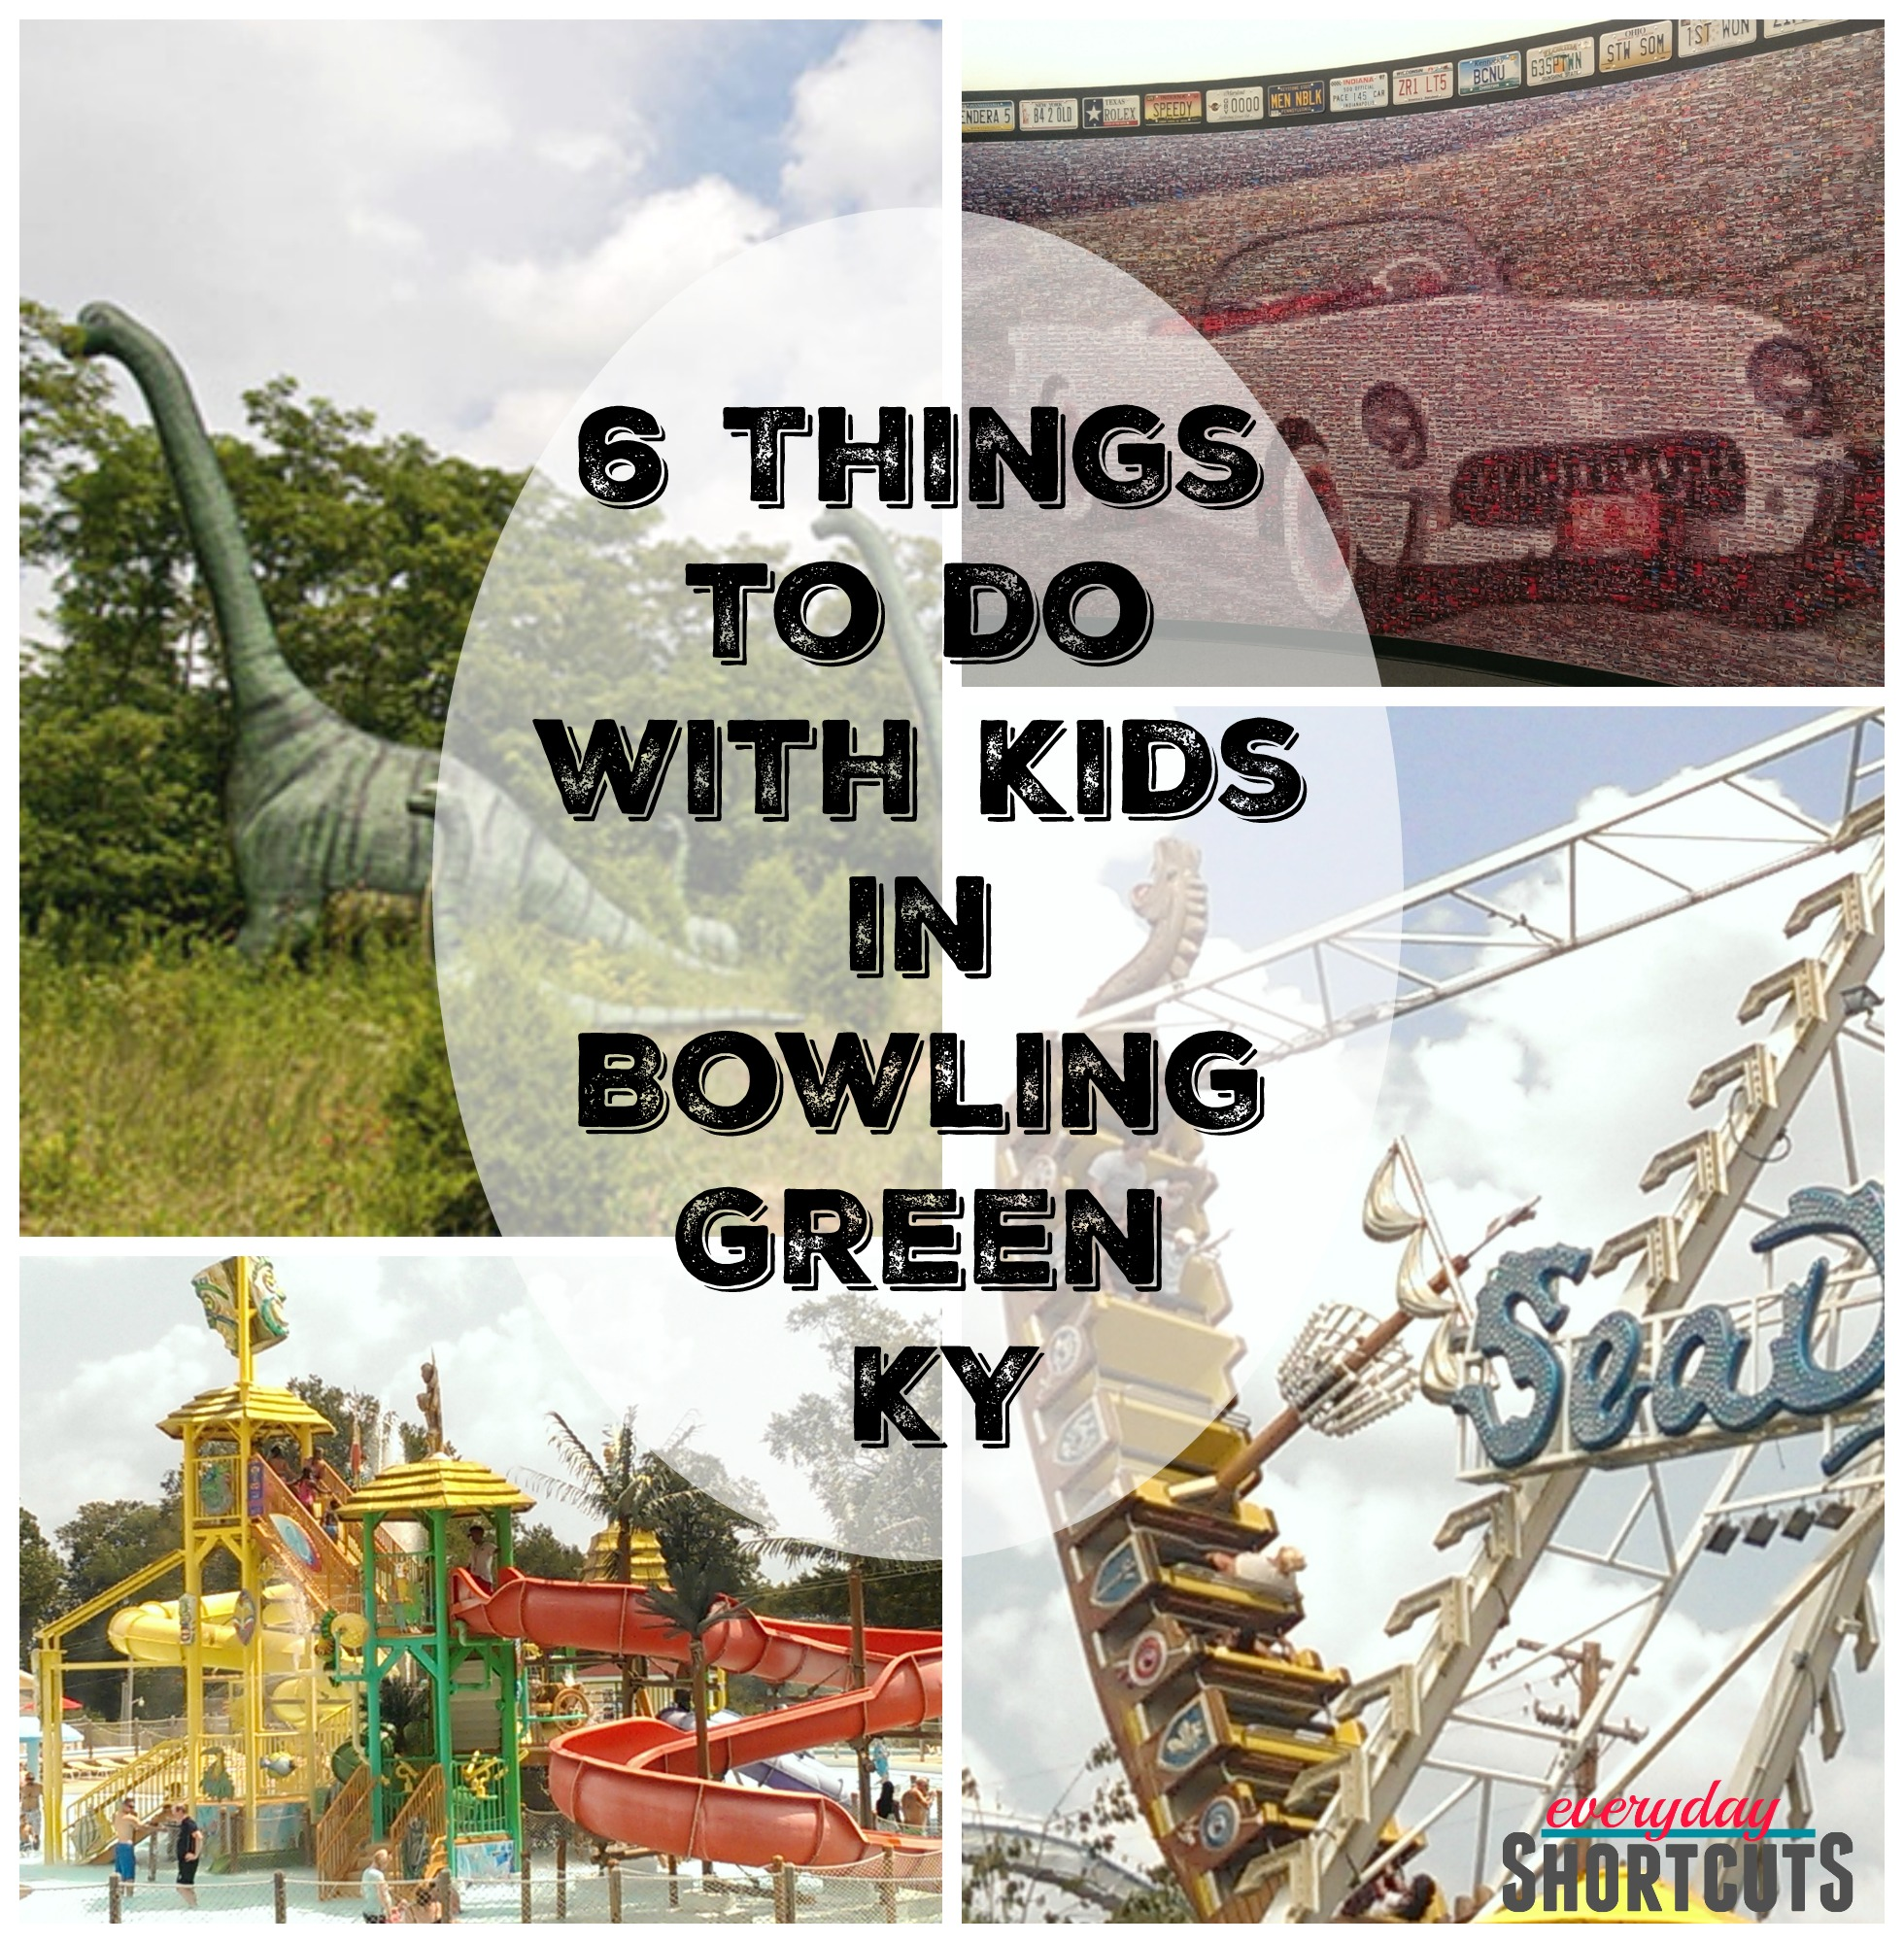 things-to-do-with-kids-in-bowling-green-ky